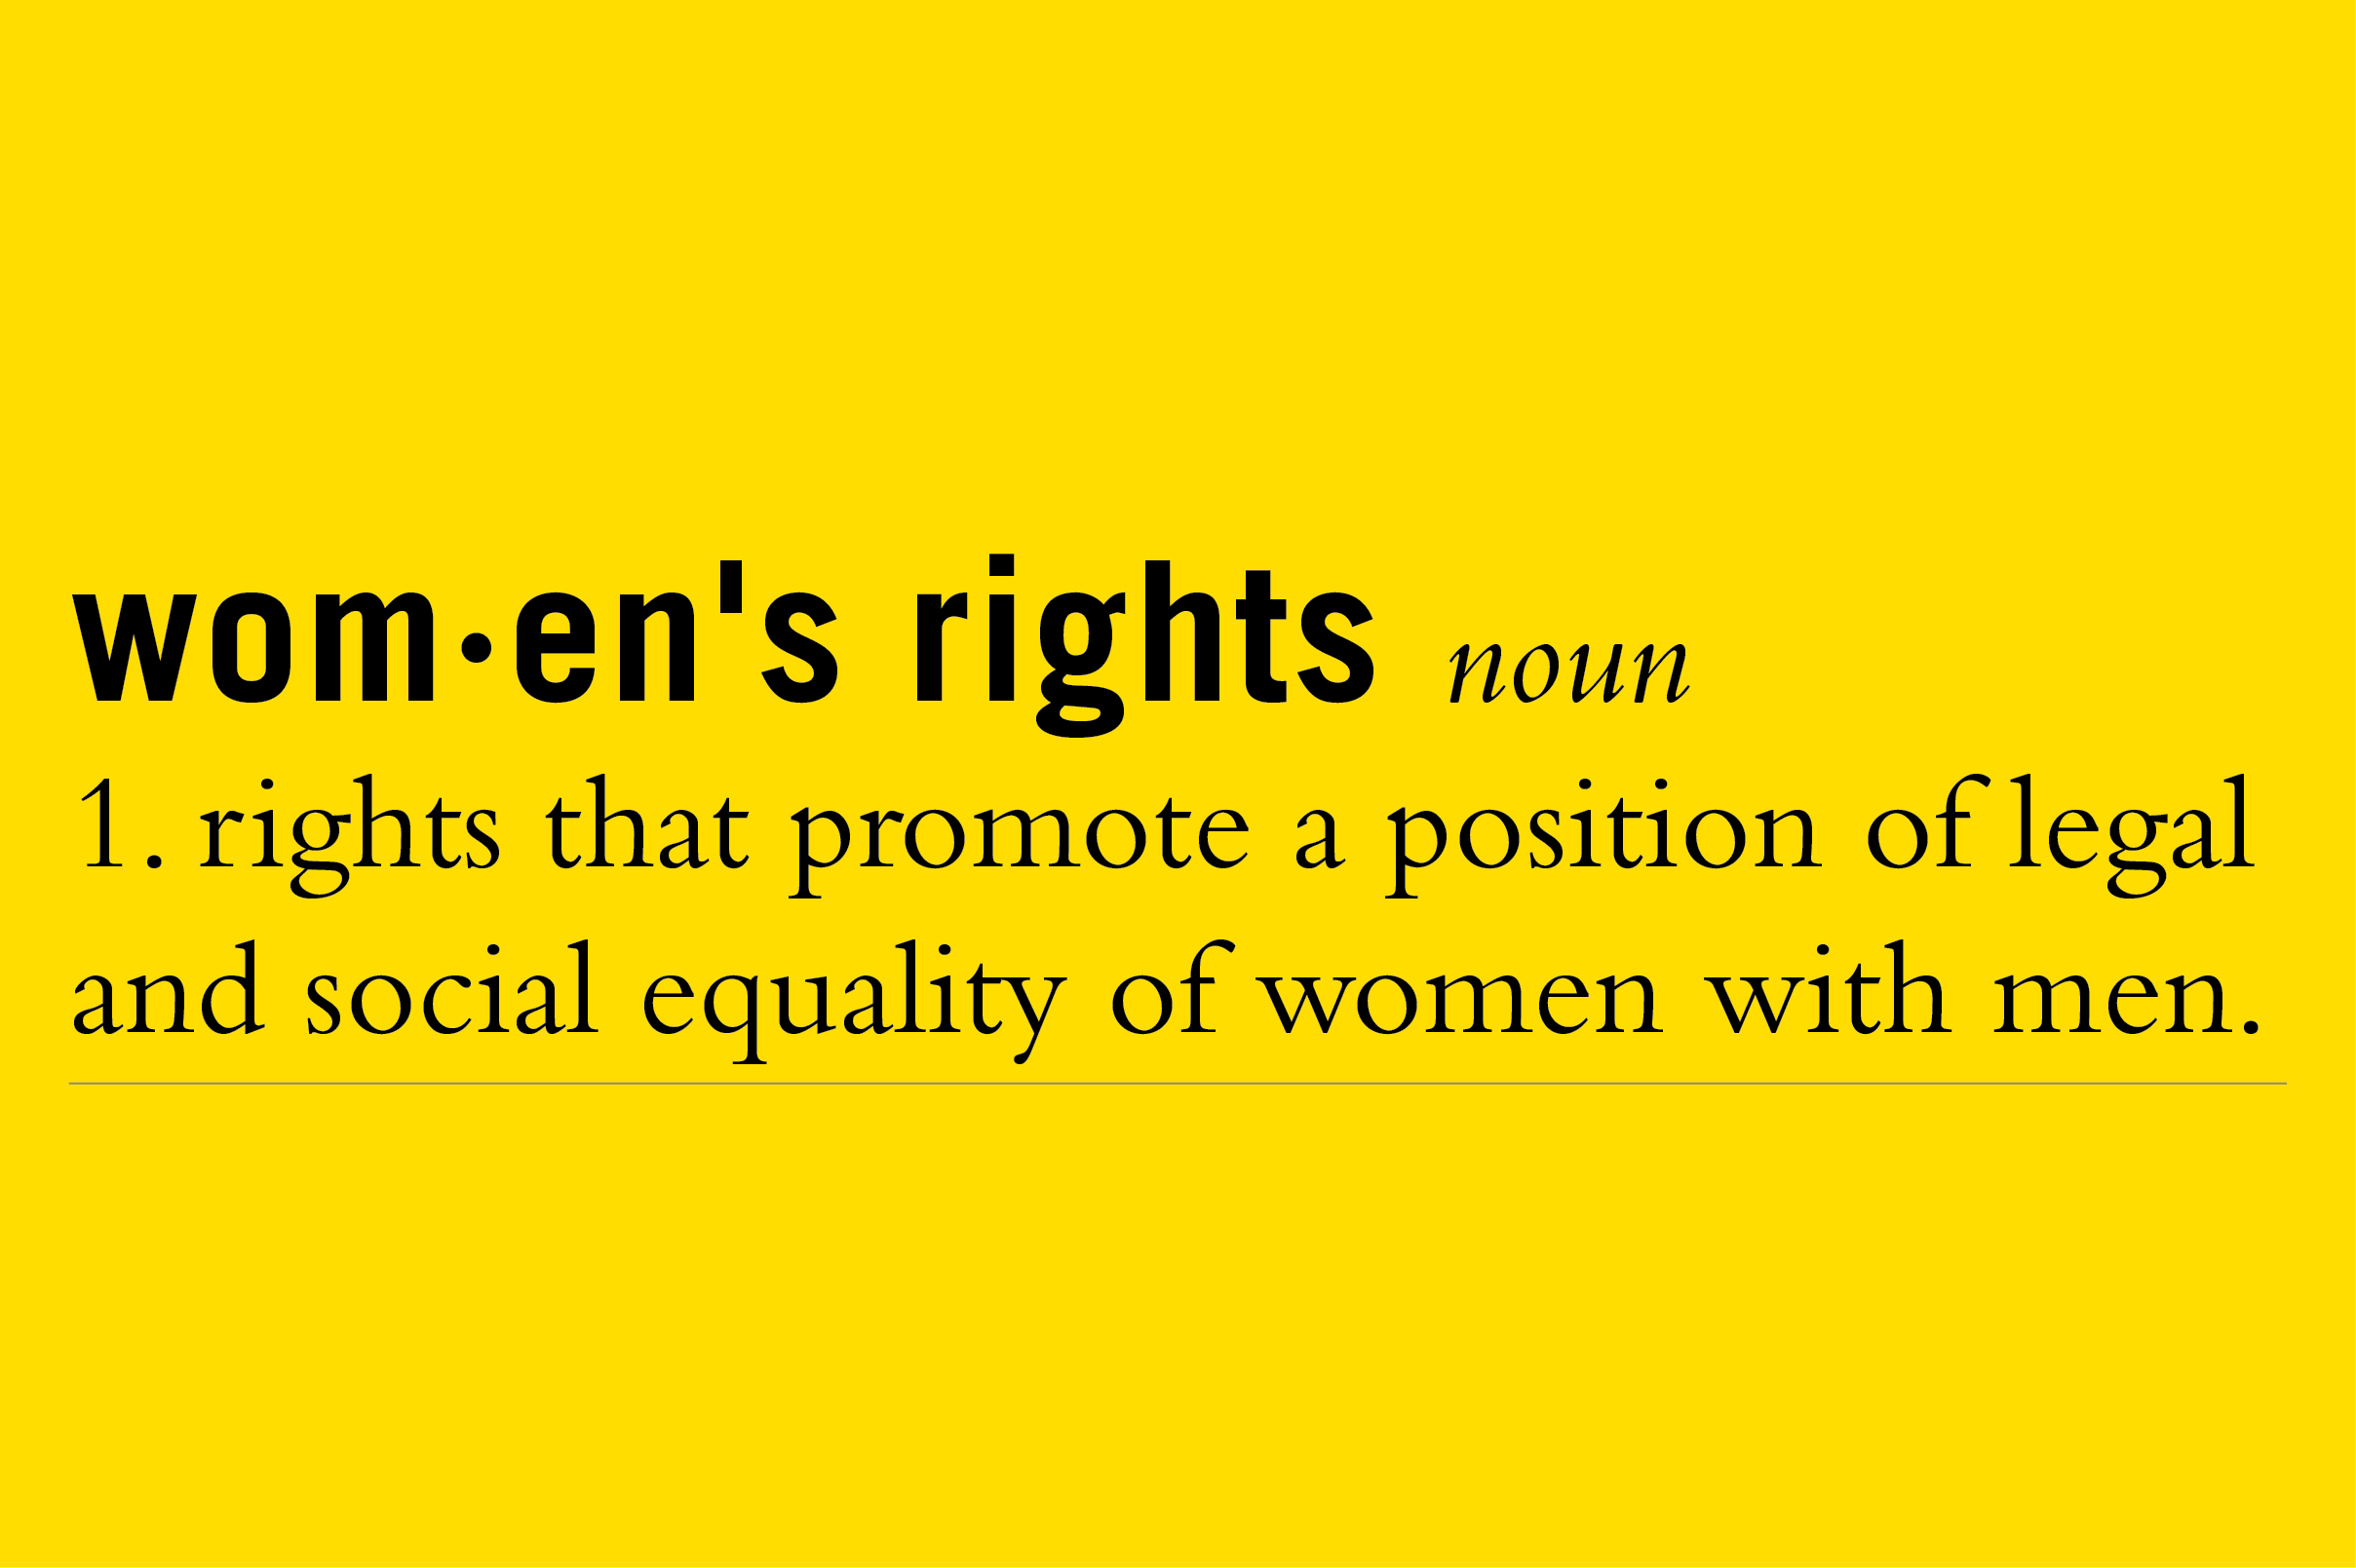 Women's Rights Quotes Progressive Charlestown Women's Rights  Human Rights